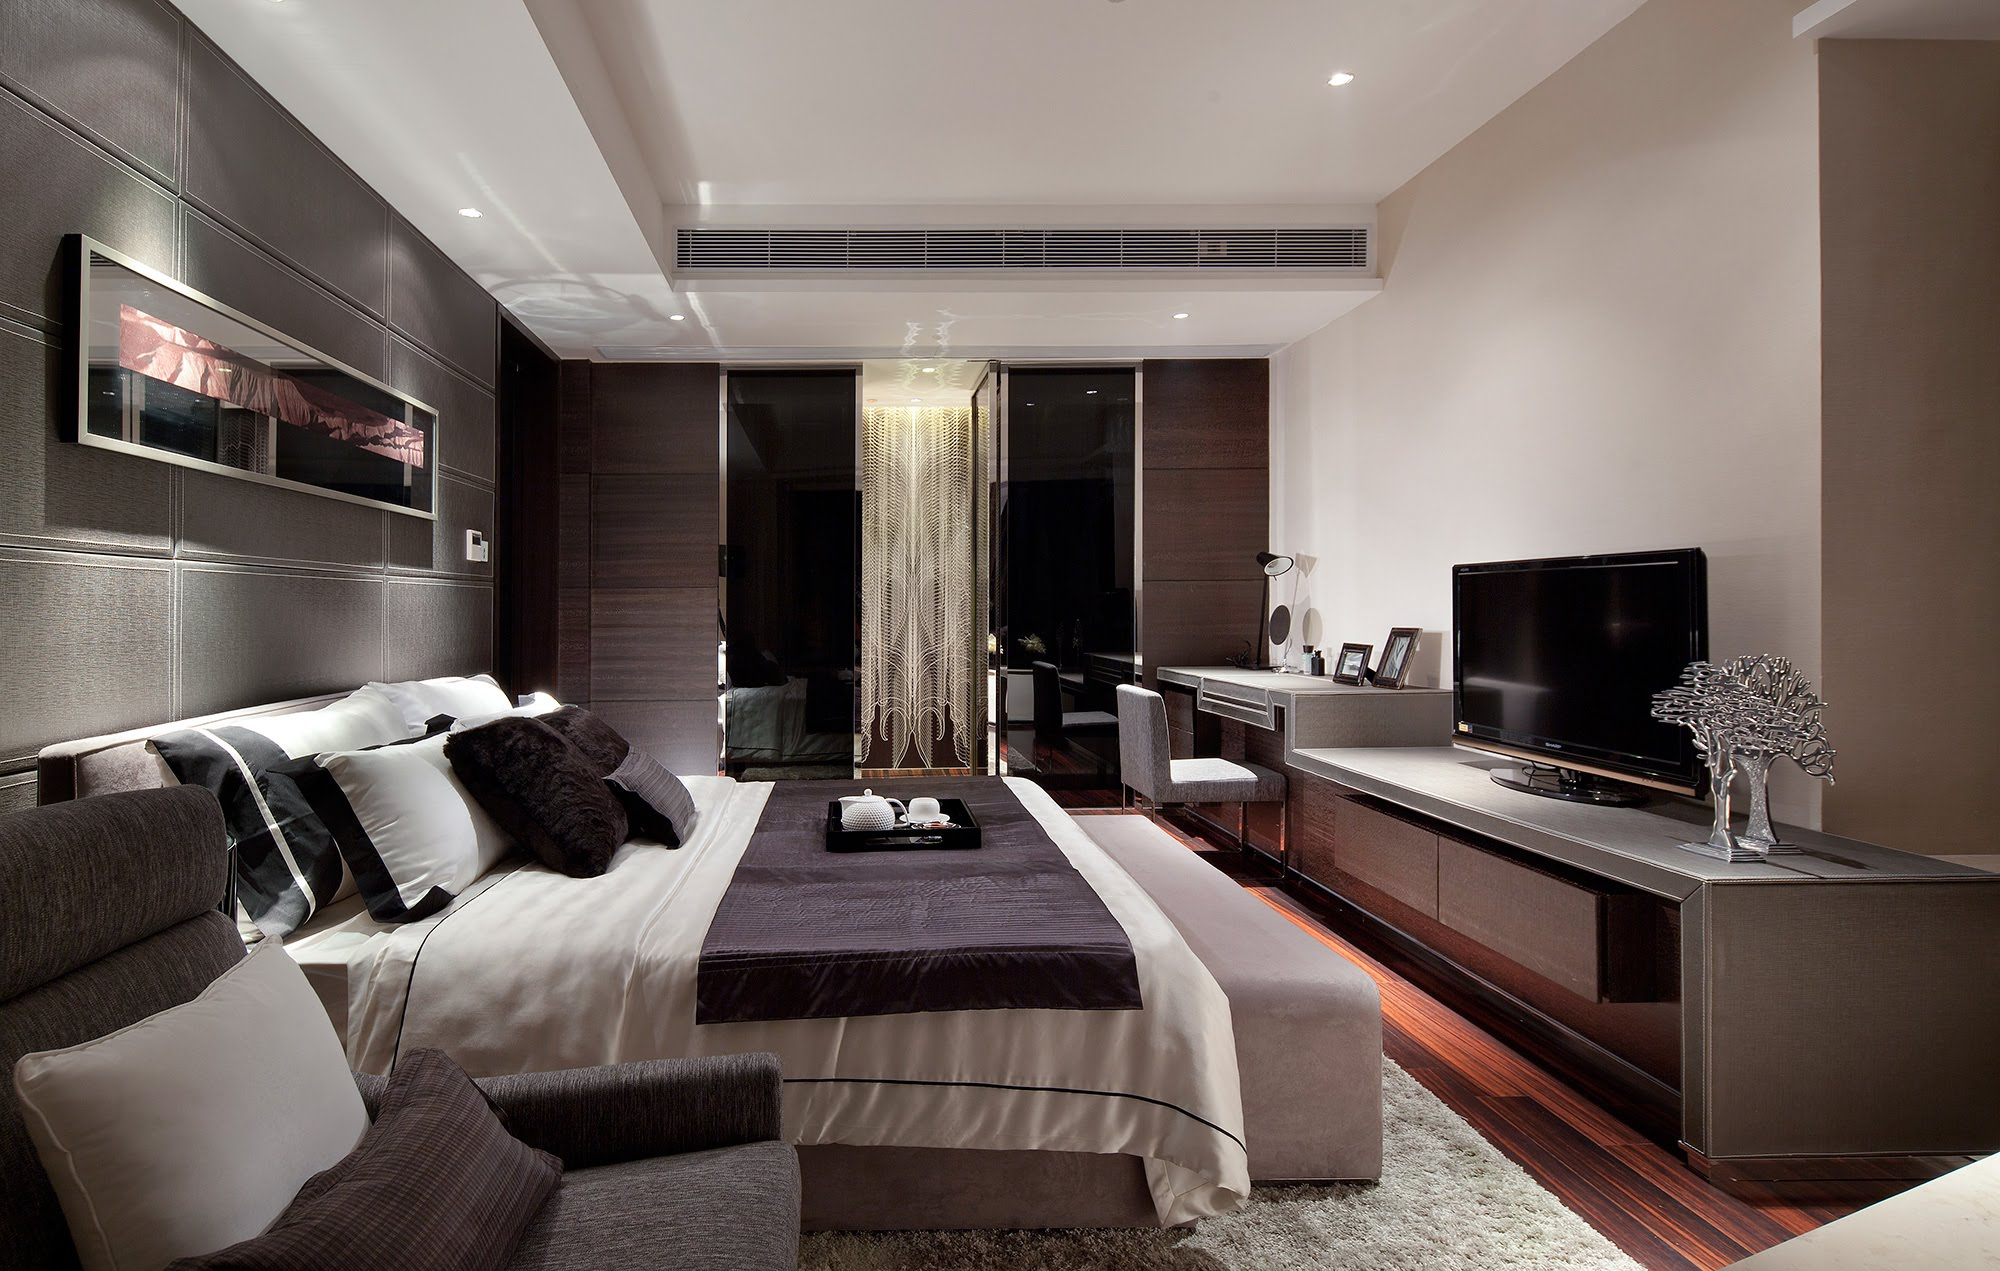 Cool bed ideas 2017 22